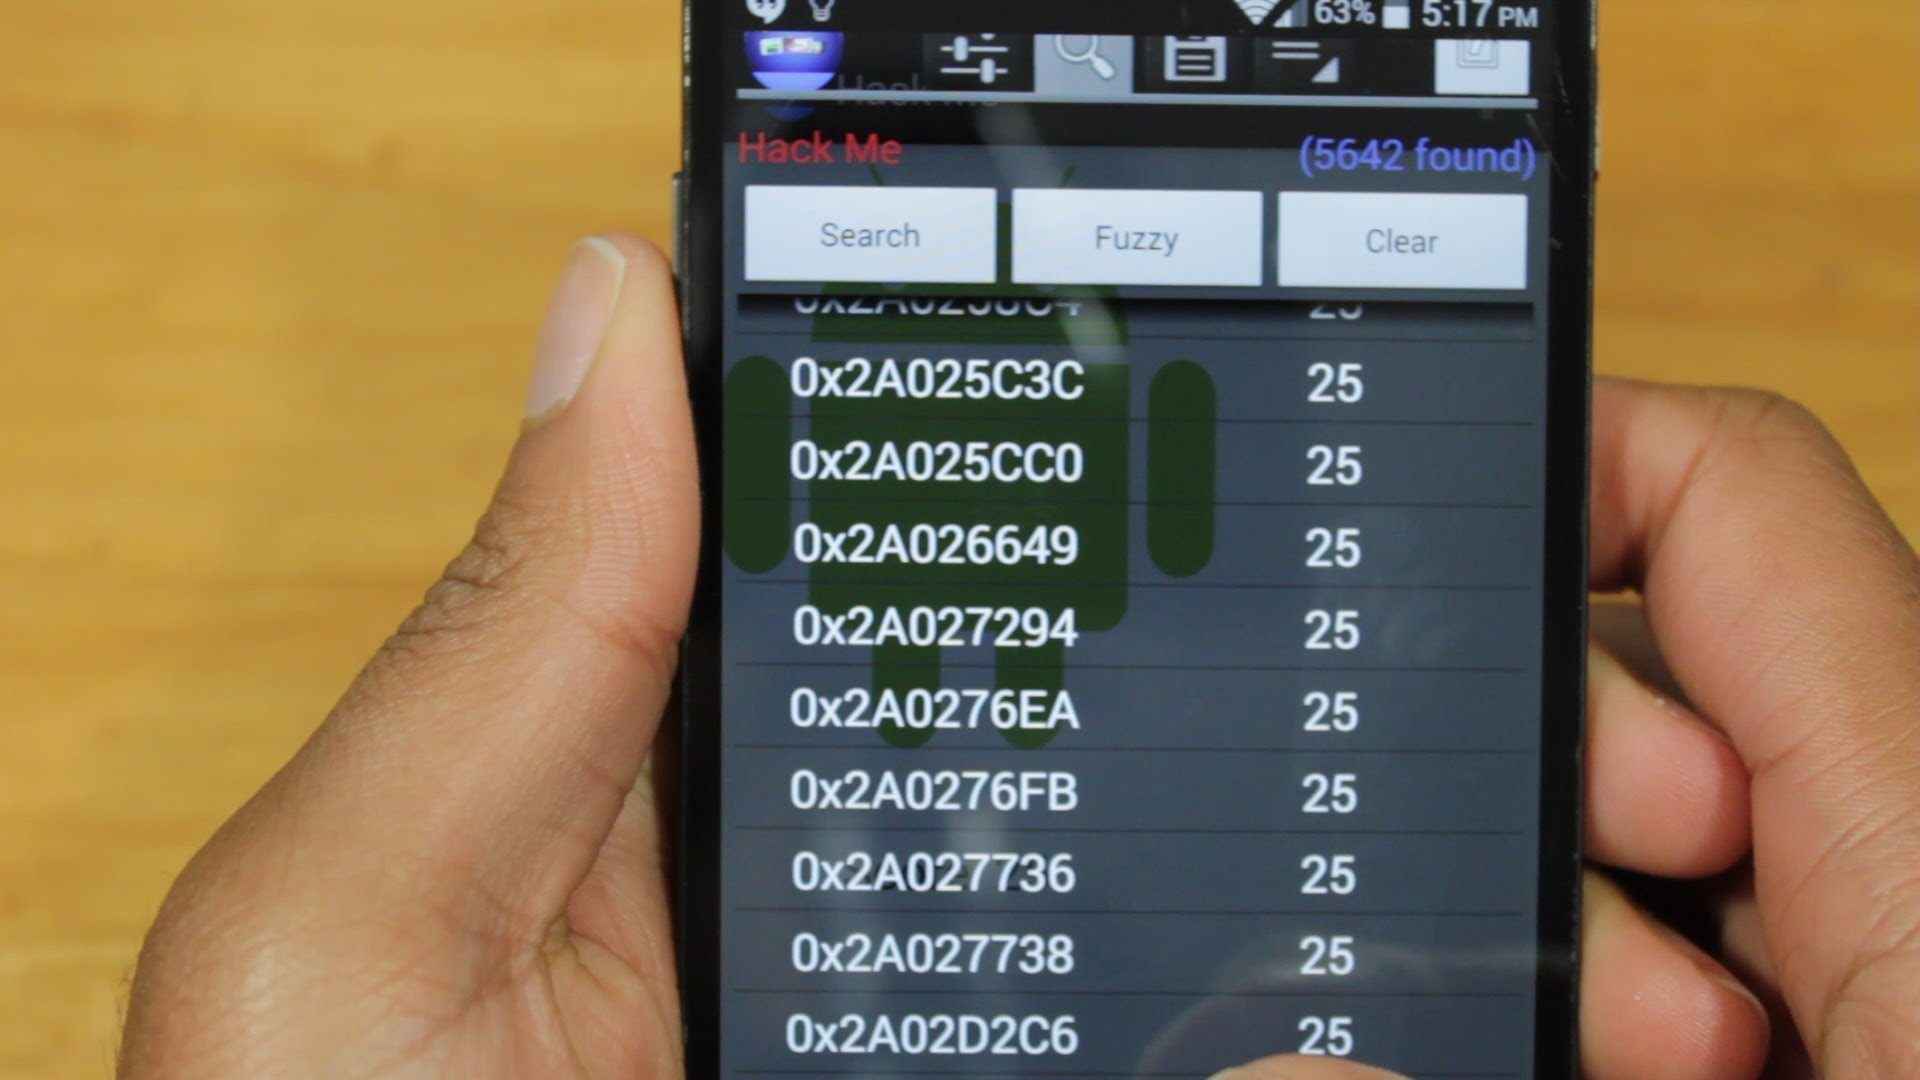 Best Free Hacking Apps For Android Phones